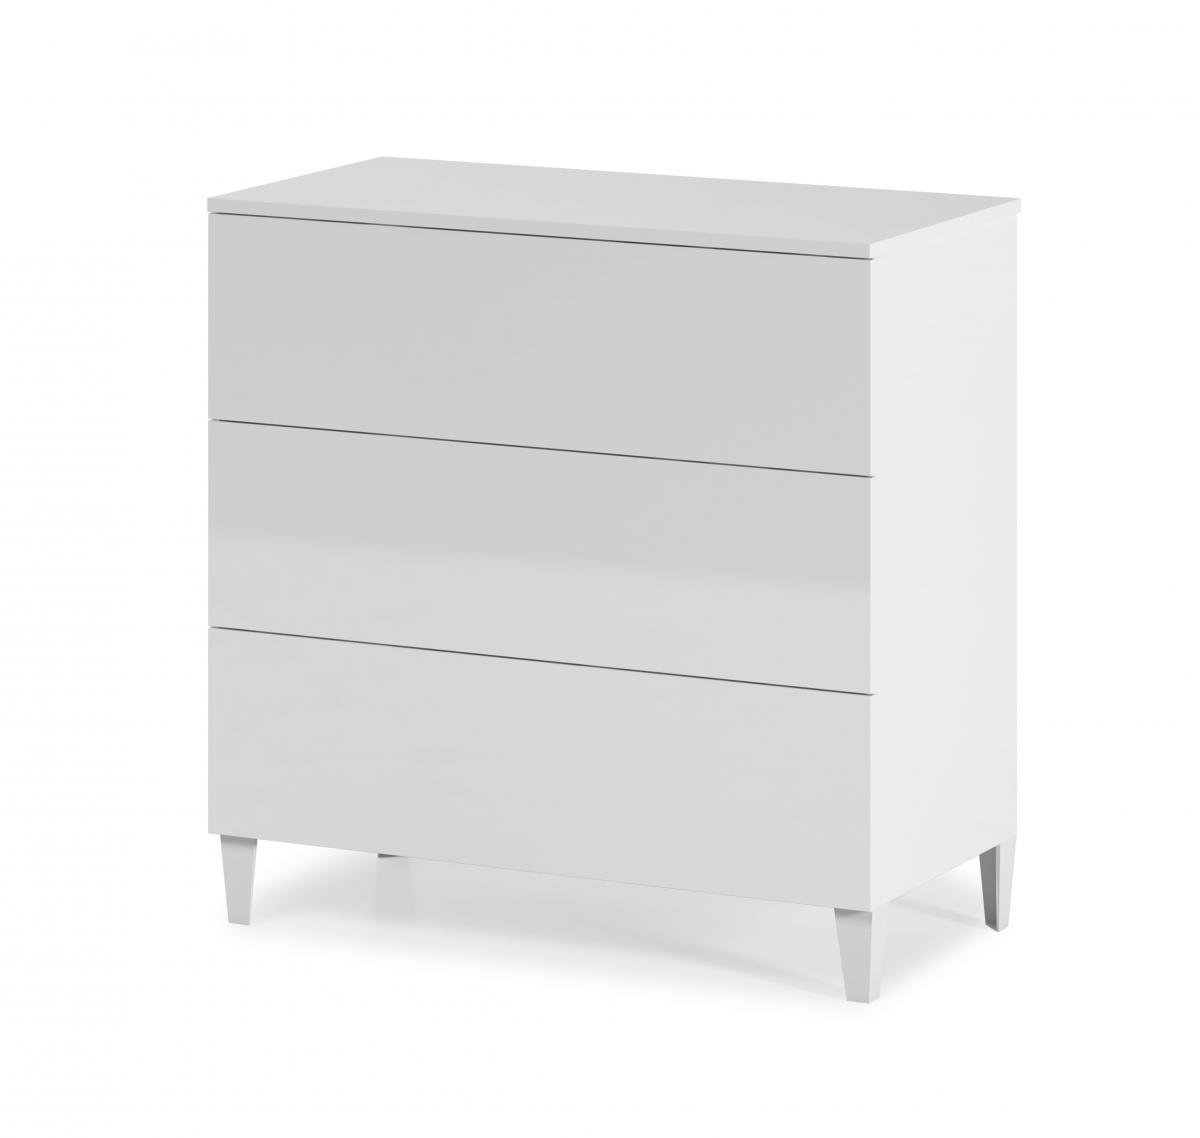 Cheap Arctic Chest 3 Drawer High Shine White for your Bedroom